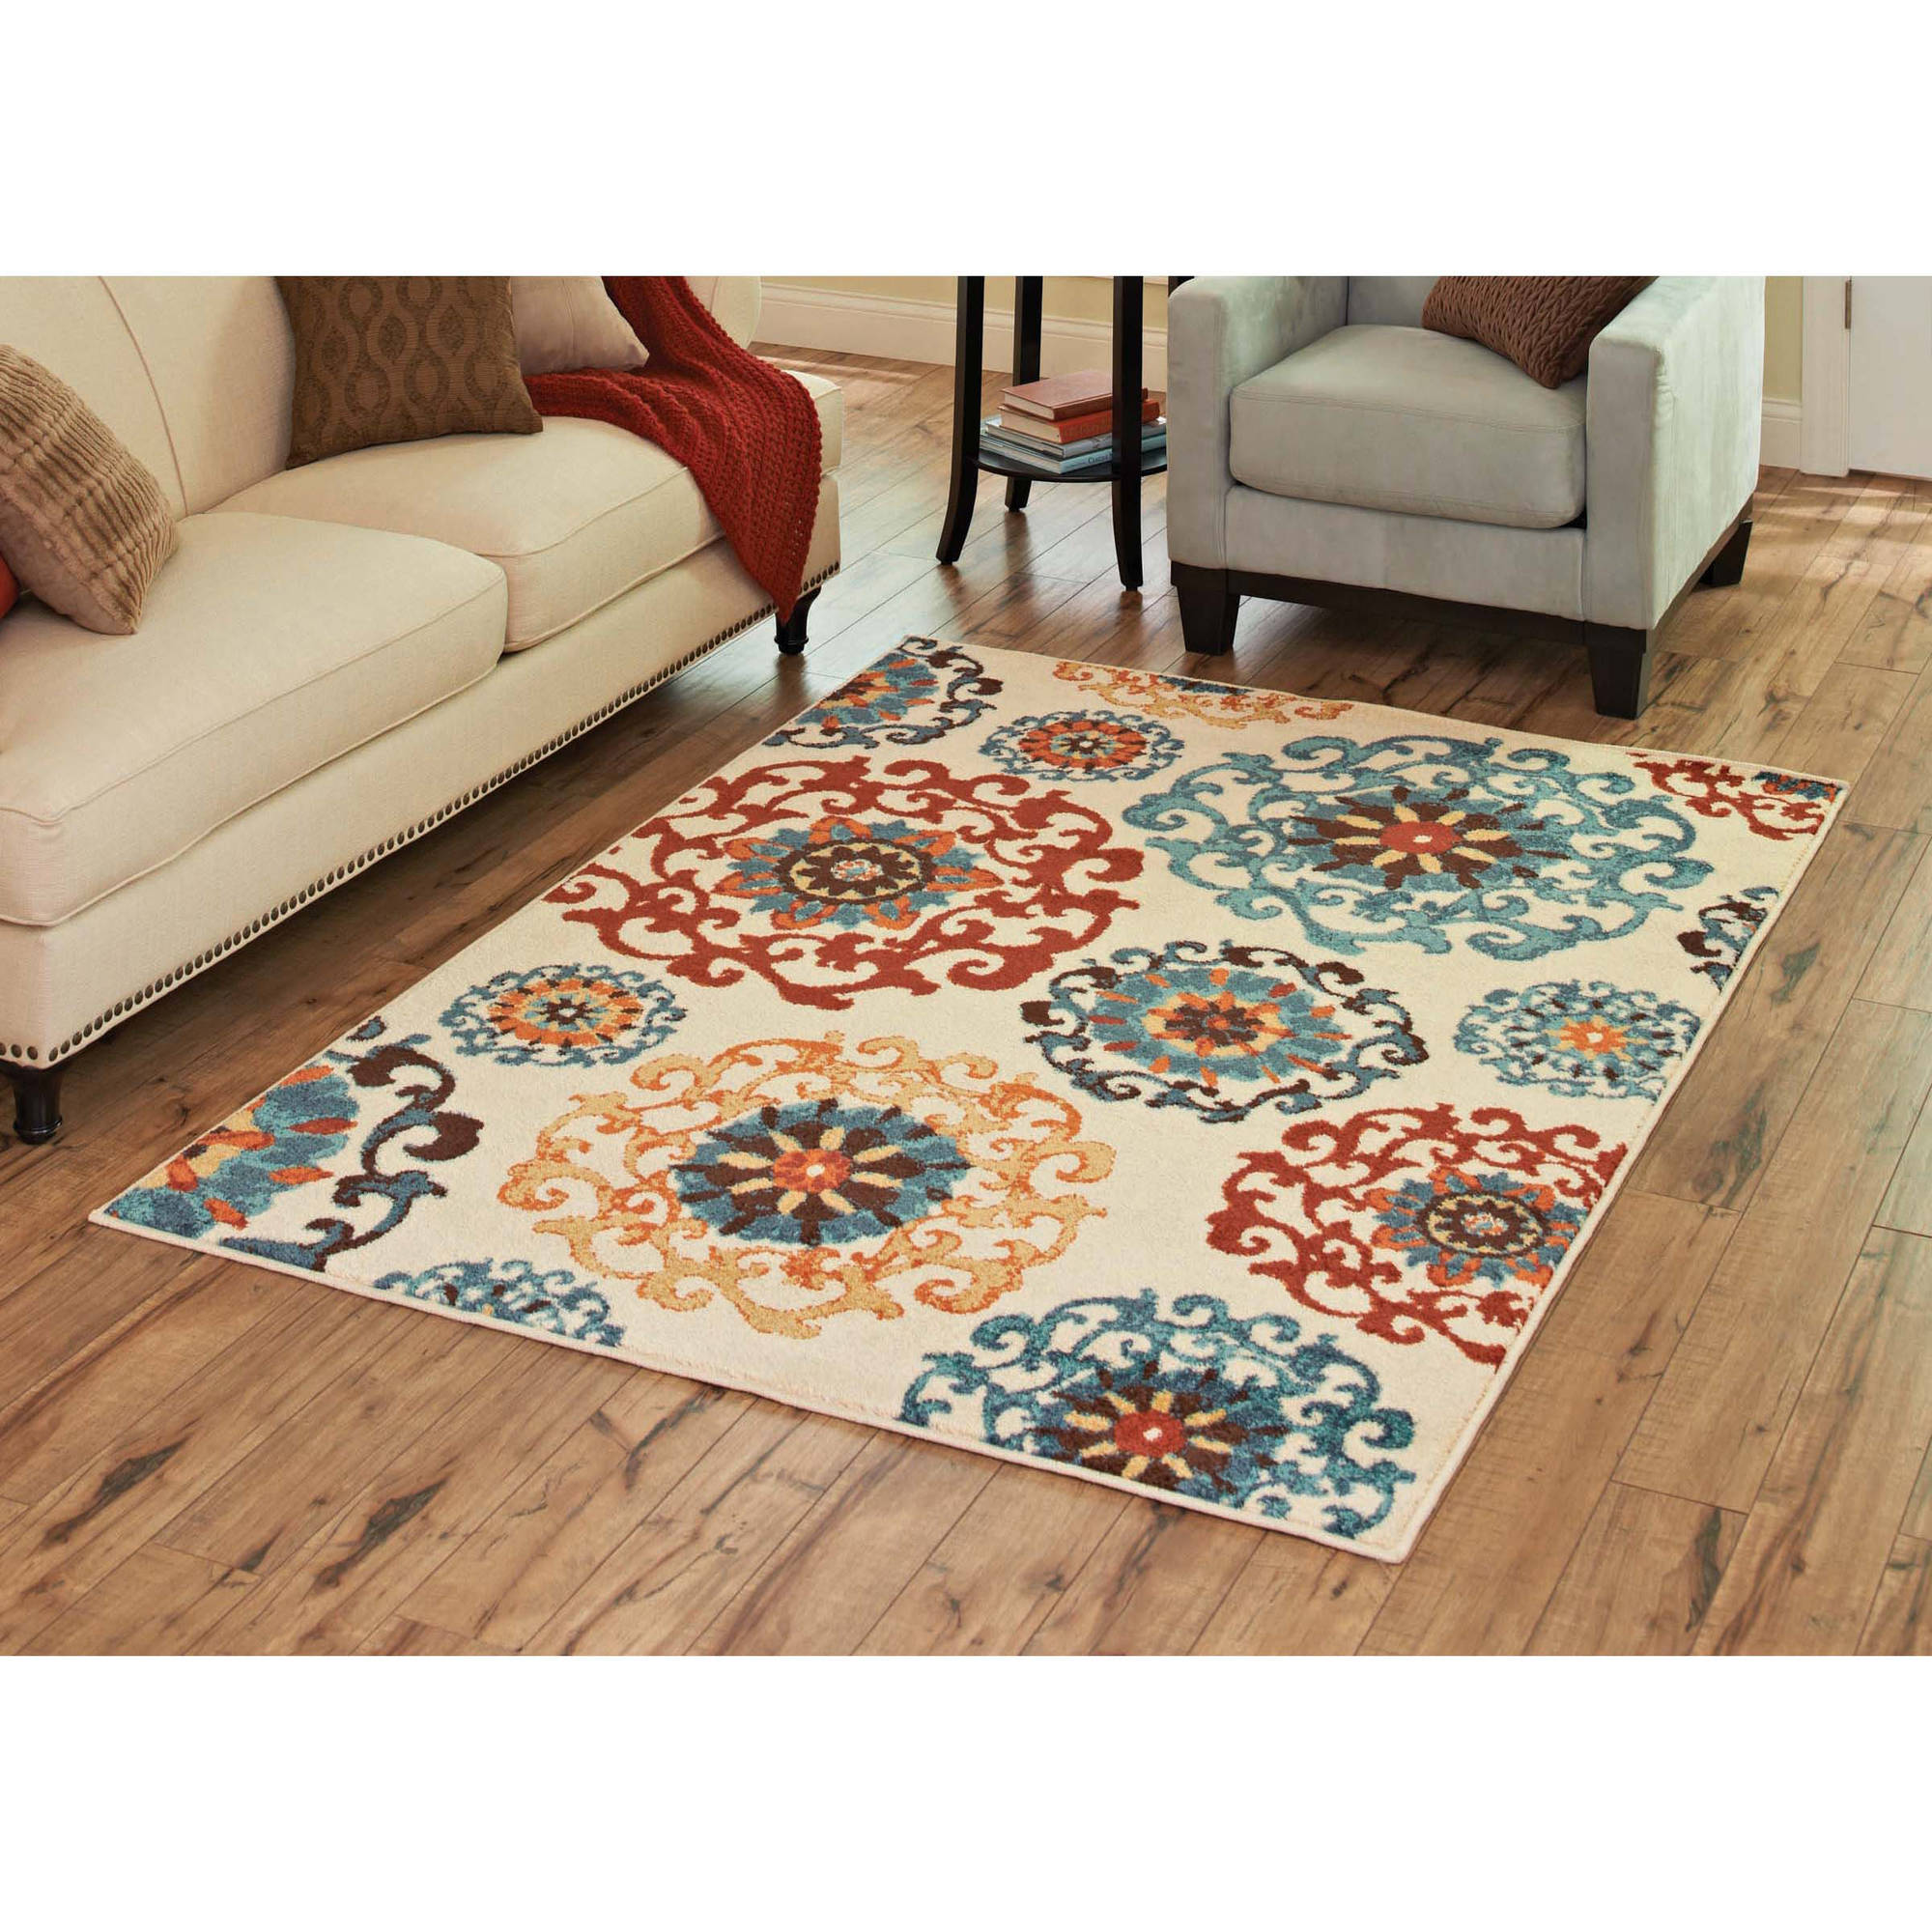 better homes and gardens suzani area rug or runner LKZPINC